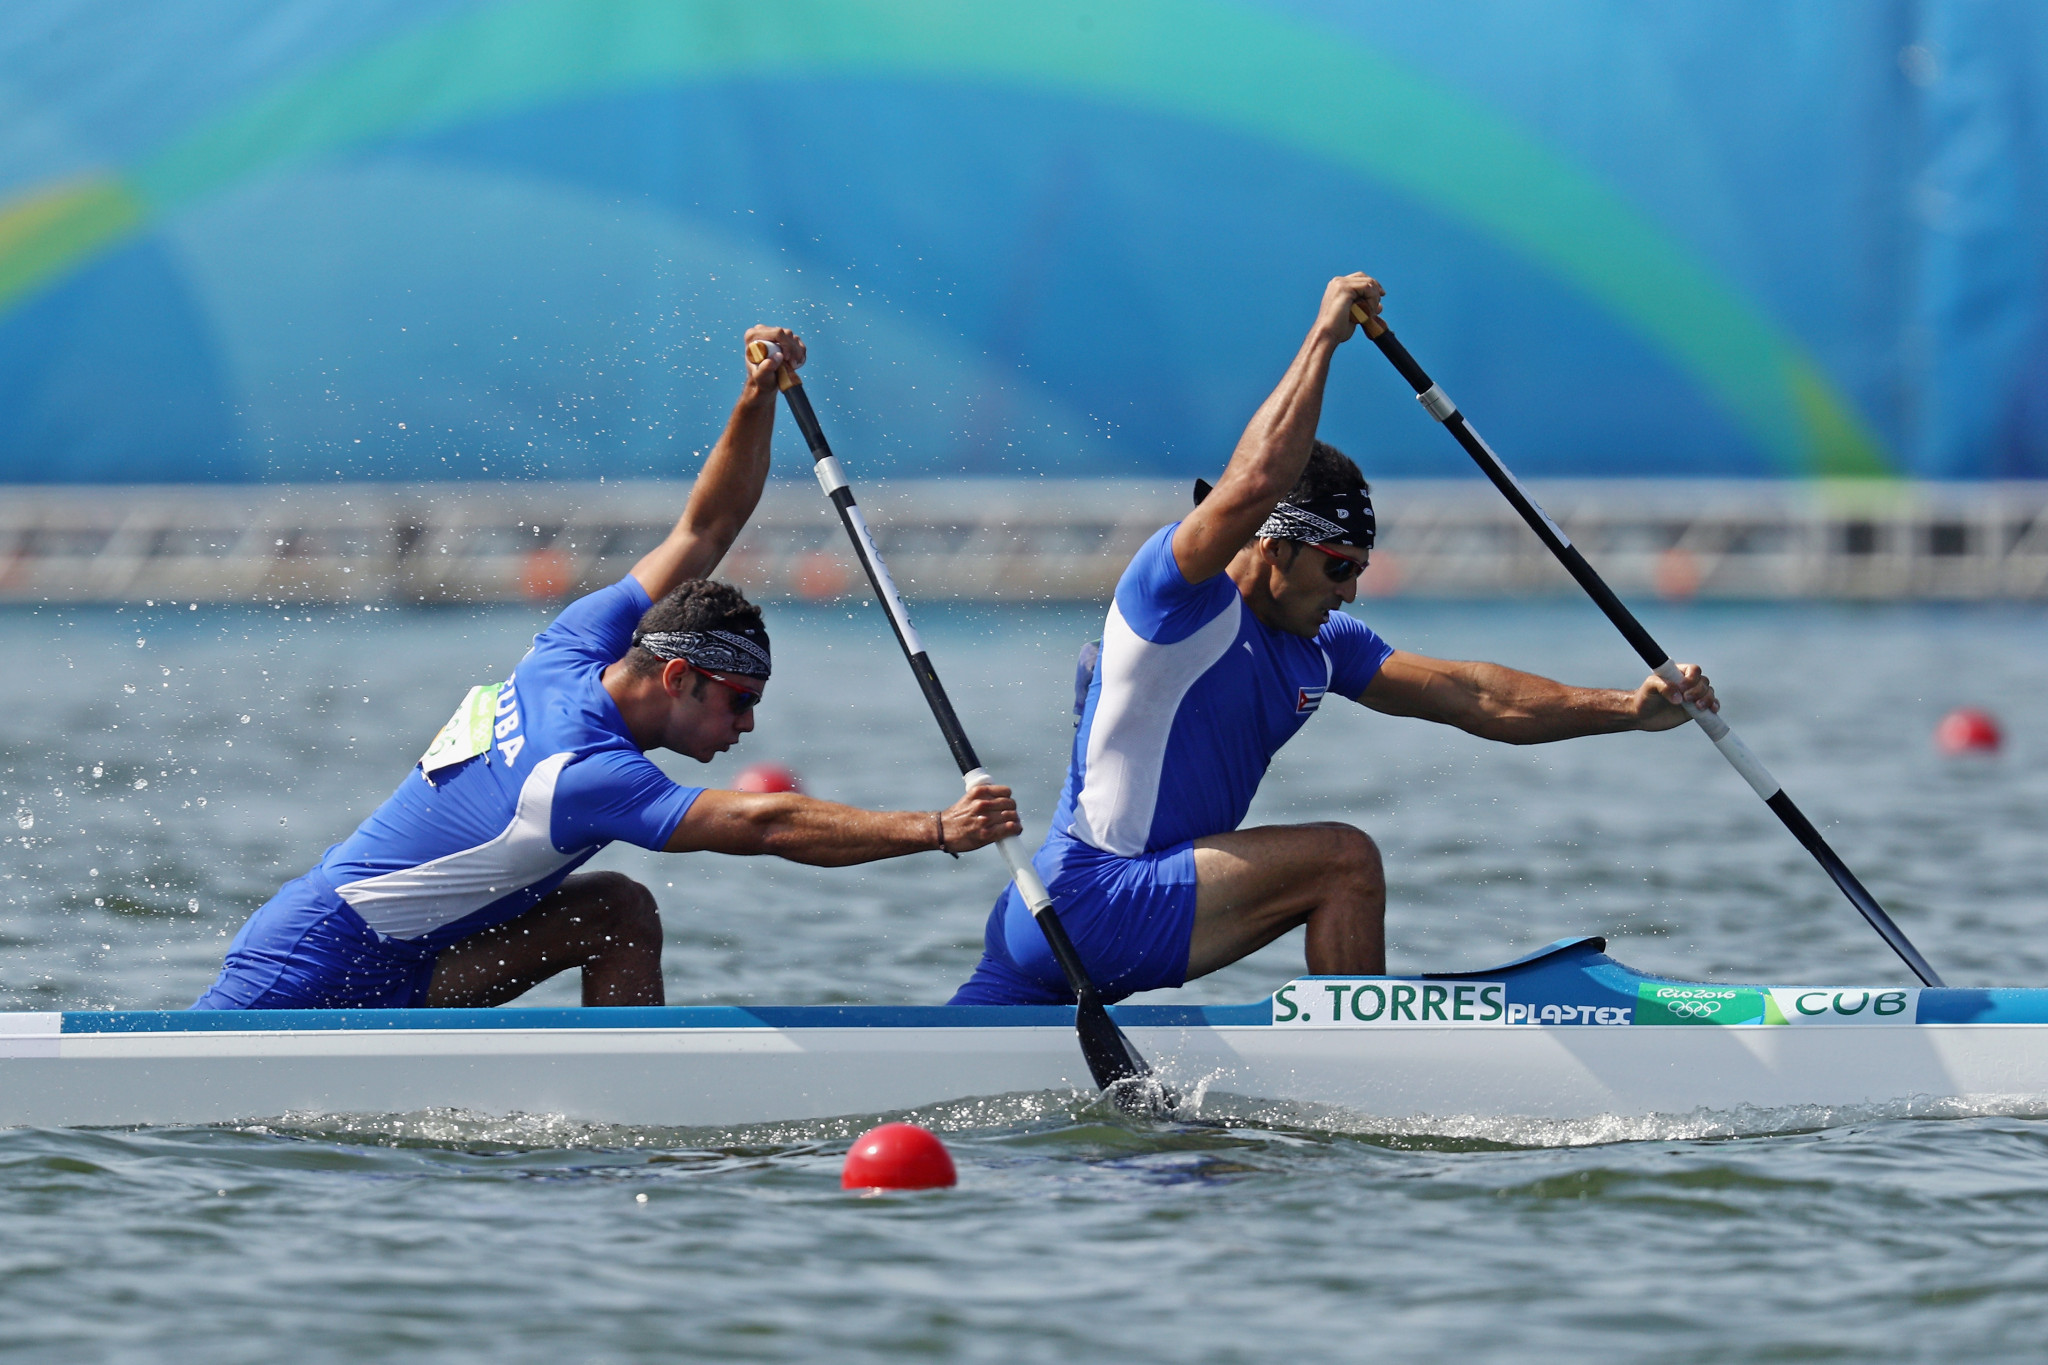 Cuba win more Barnaul golds in five-star display at Canoe Sprint World Cup